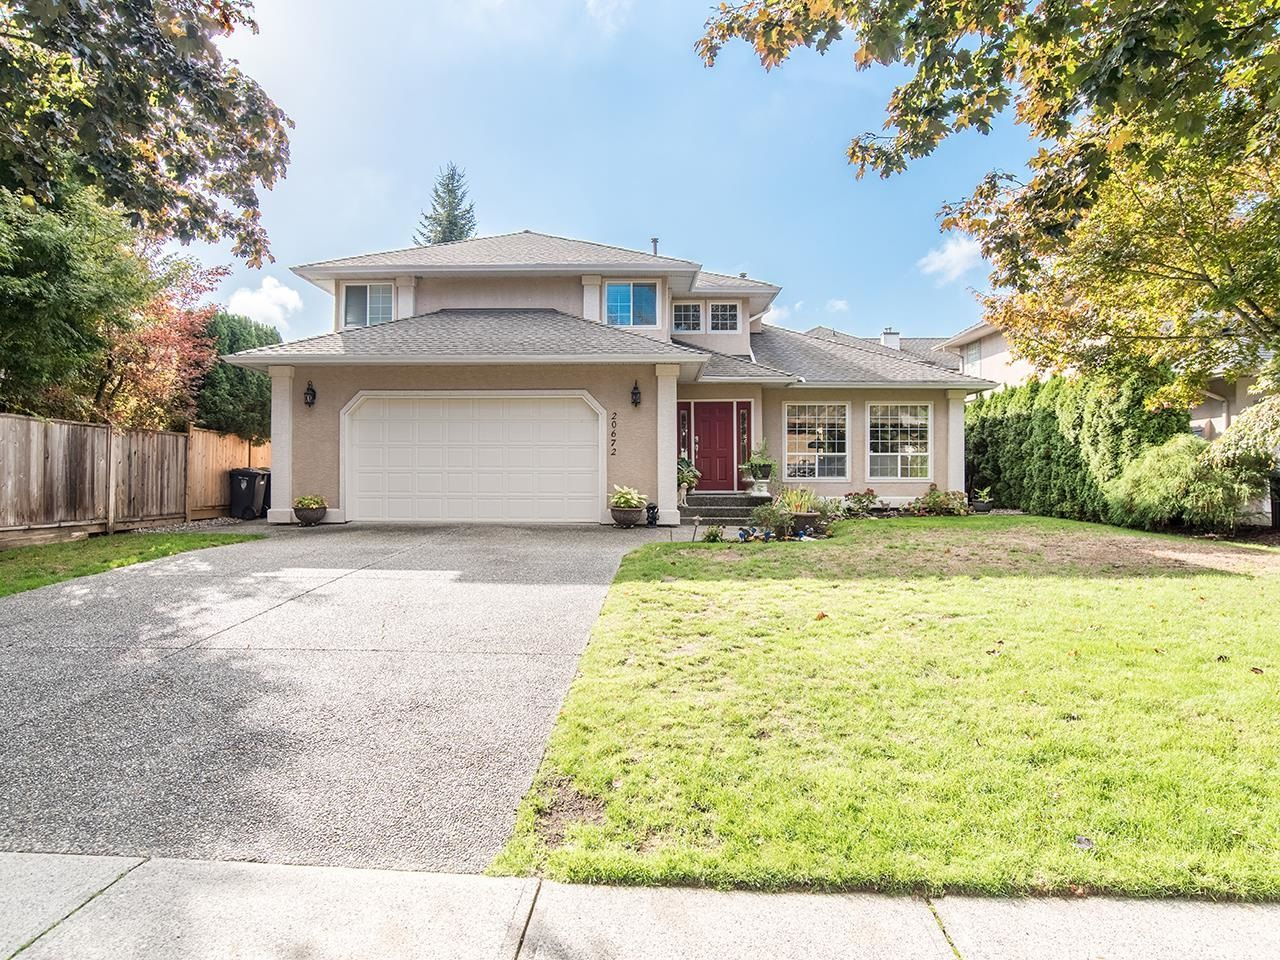 """Main Photo: 20672 93 Avenue in Langley: Walnut Grove House for sale in """"Forest Creek/Greenwood"""" : MLS®# R2622596"""